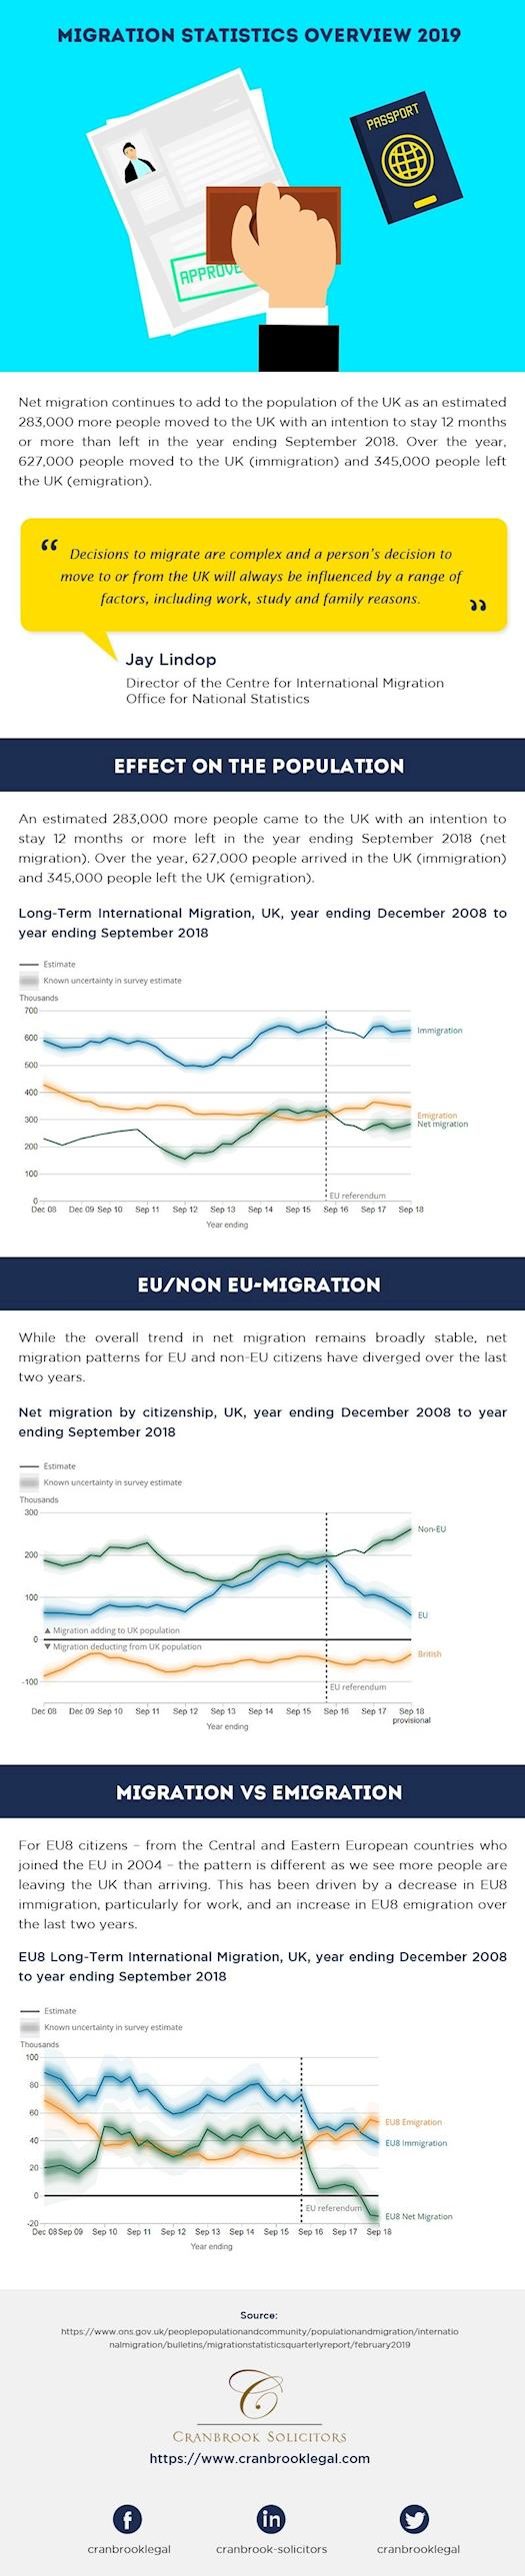 Migration Statistics Overview 2019